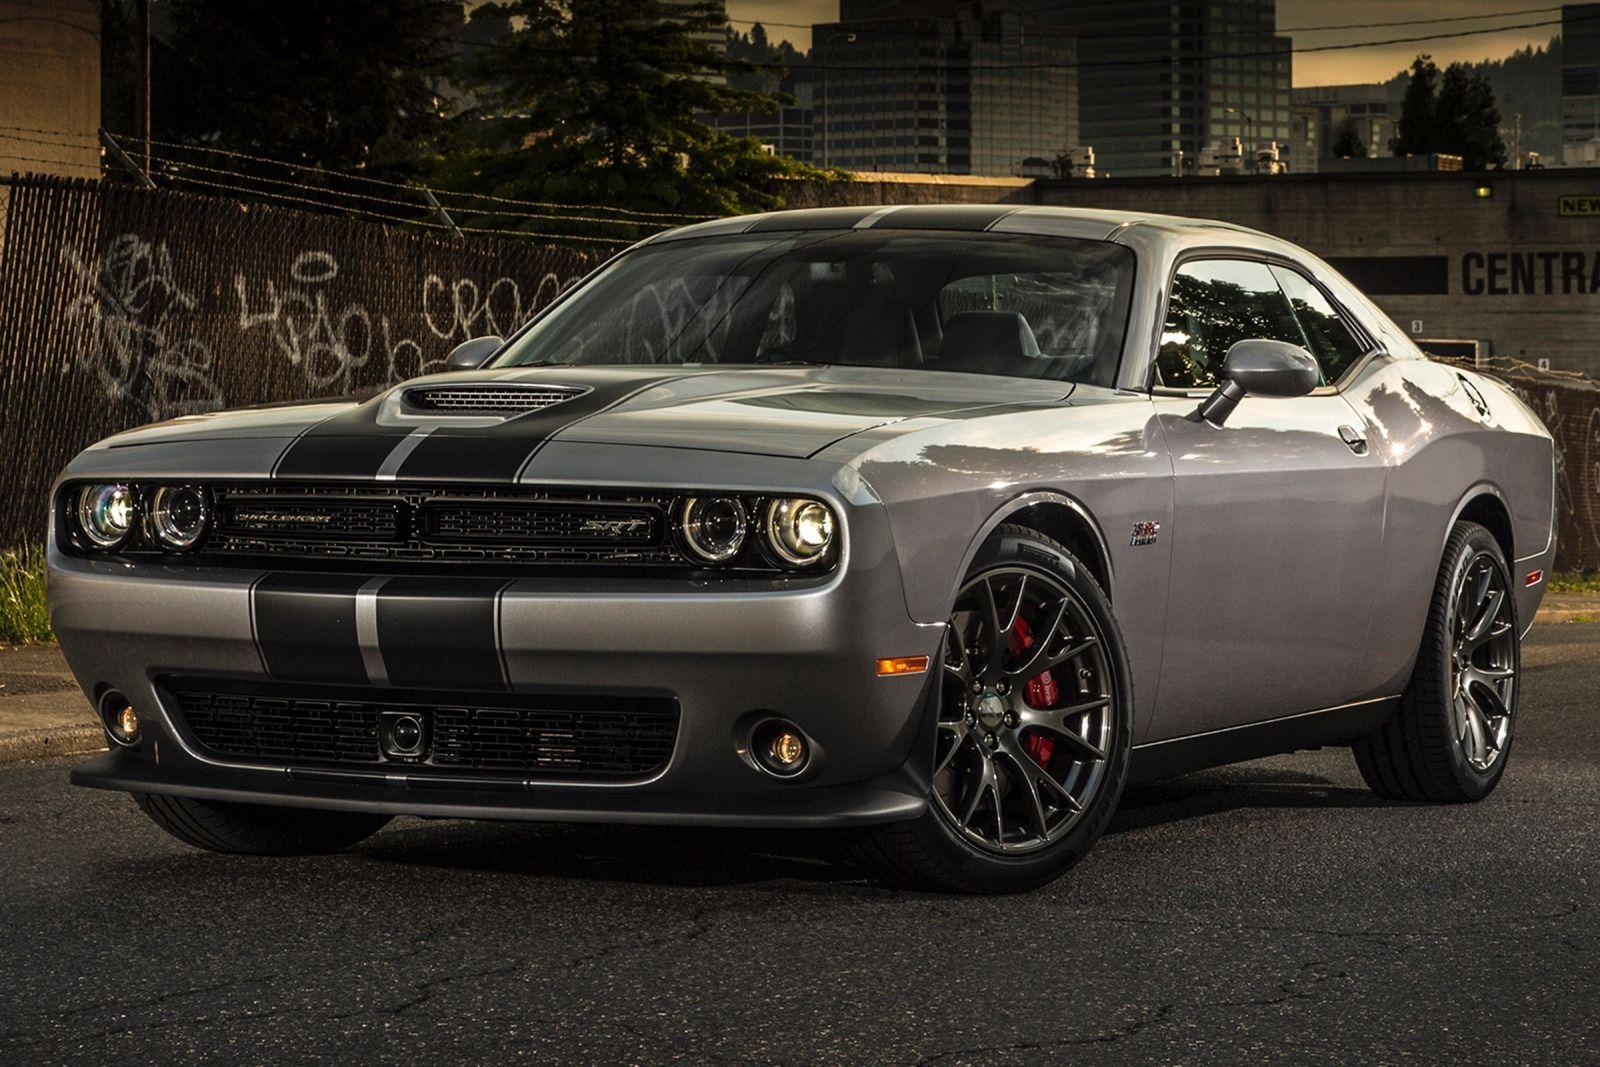 2015 dodge challenger srt design hd wallpaper 8457 cool car